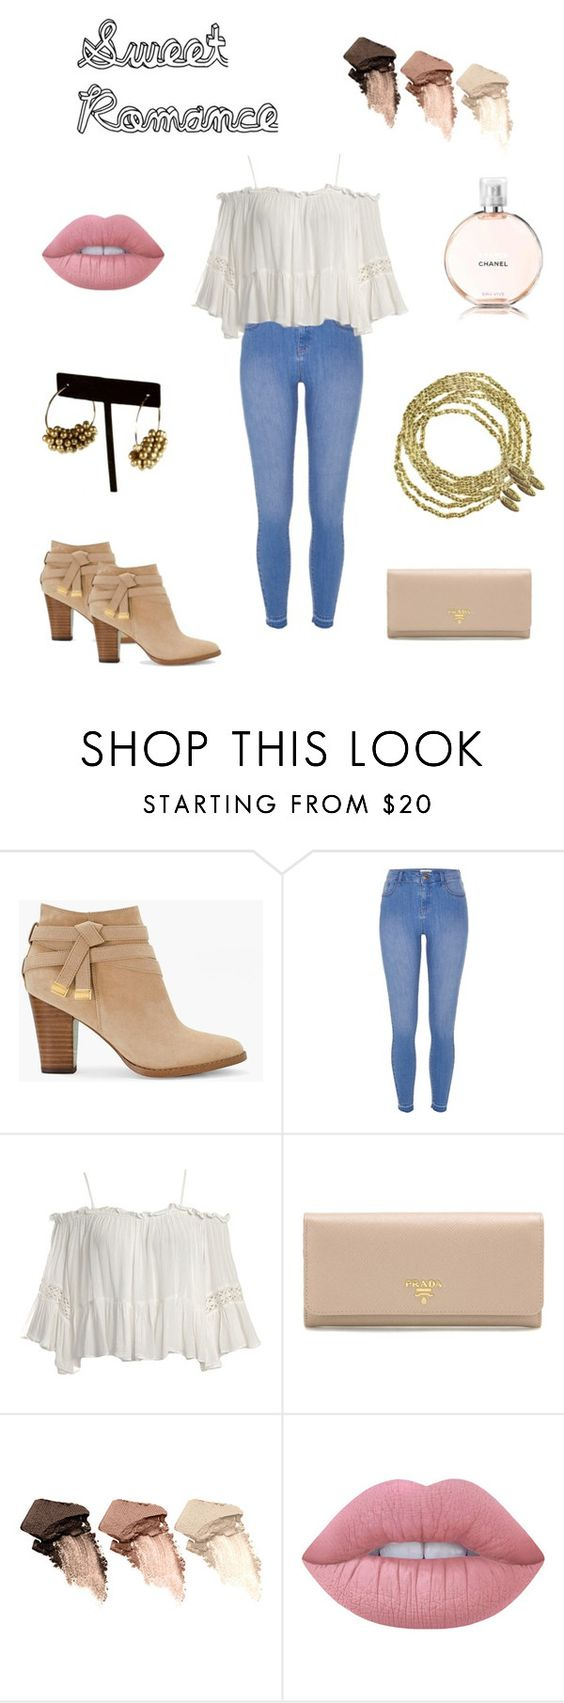 """Sweet Romance"" by sameskystyle on Polyvore featuring White House Black Market, River Island, Sans Souci, Prada, Urban Decay, Lime Crime, Chanel and samesky"